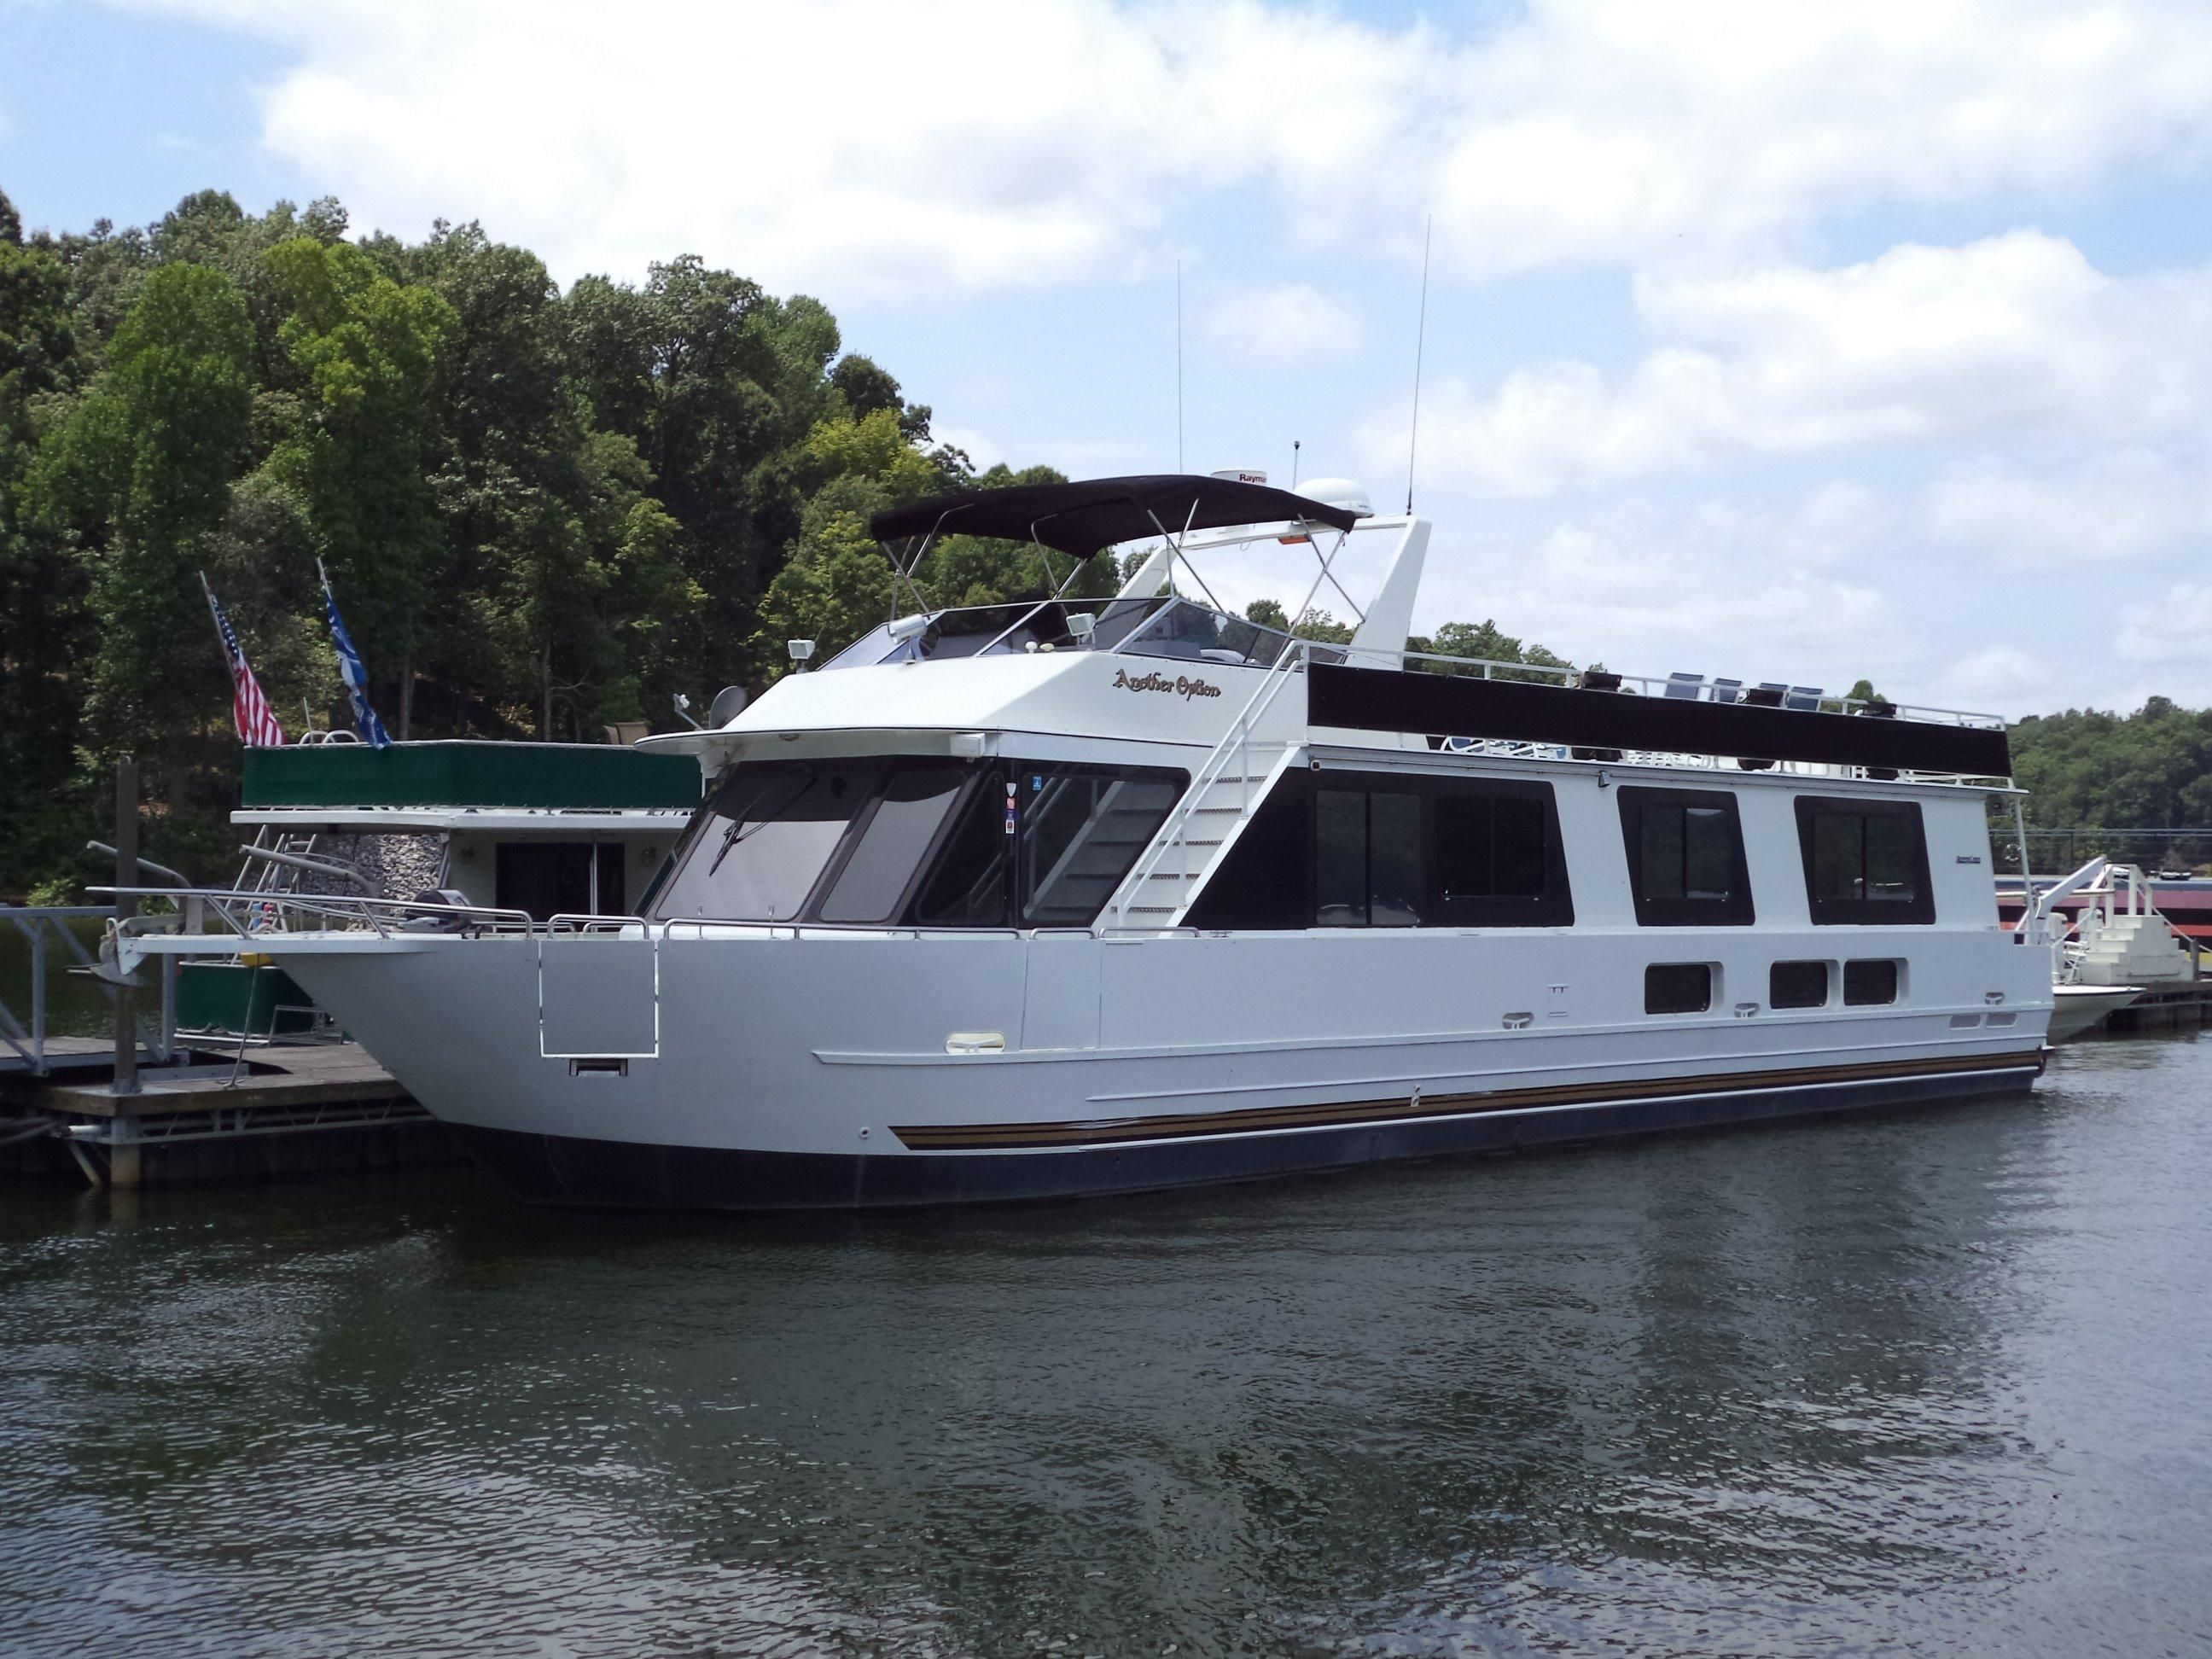 Eddyville (KY) United States  city images : 2000 Skipperliner 660 MY Power Boat For Sale www.yachtworld.com